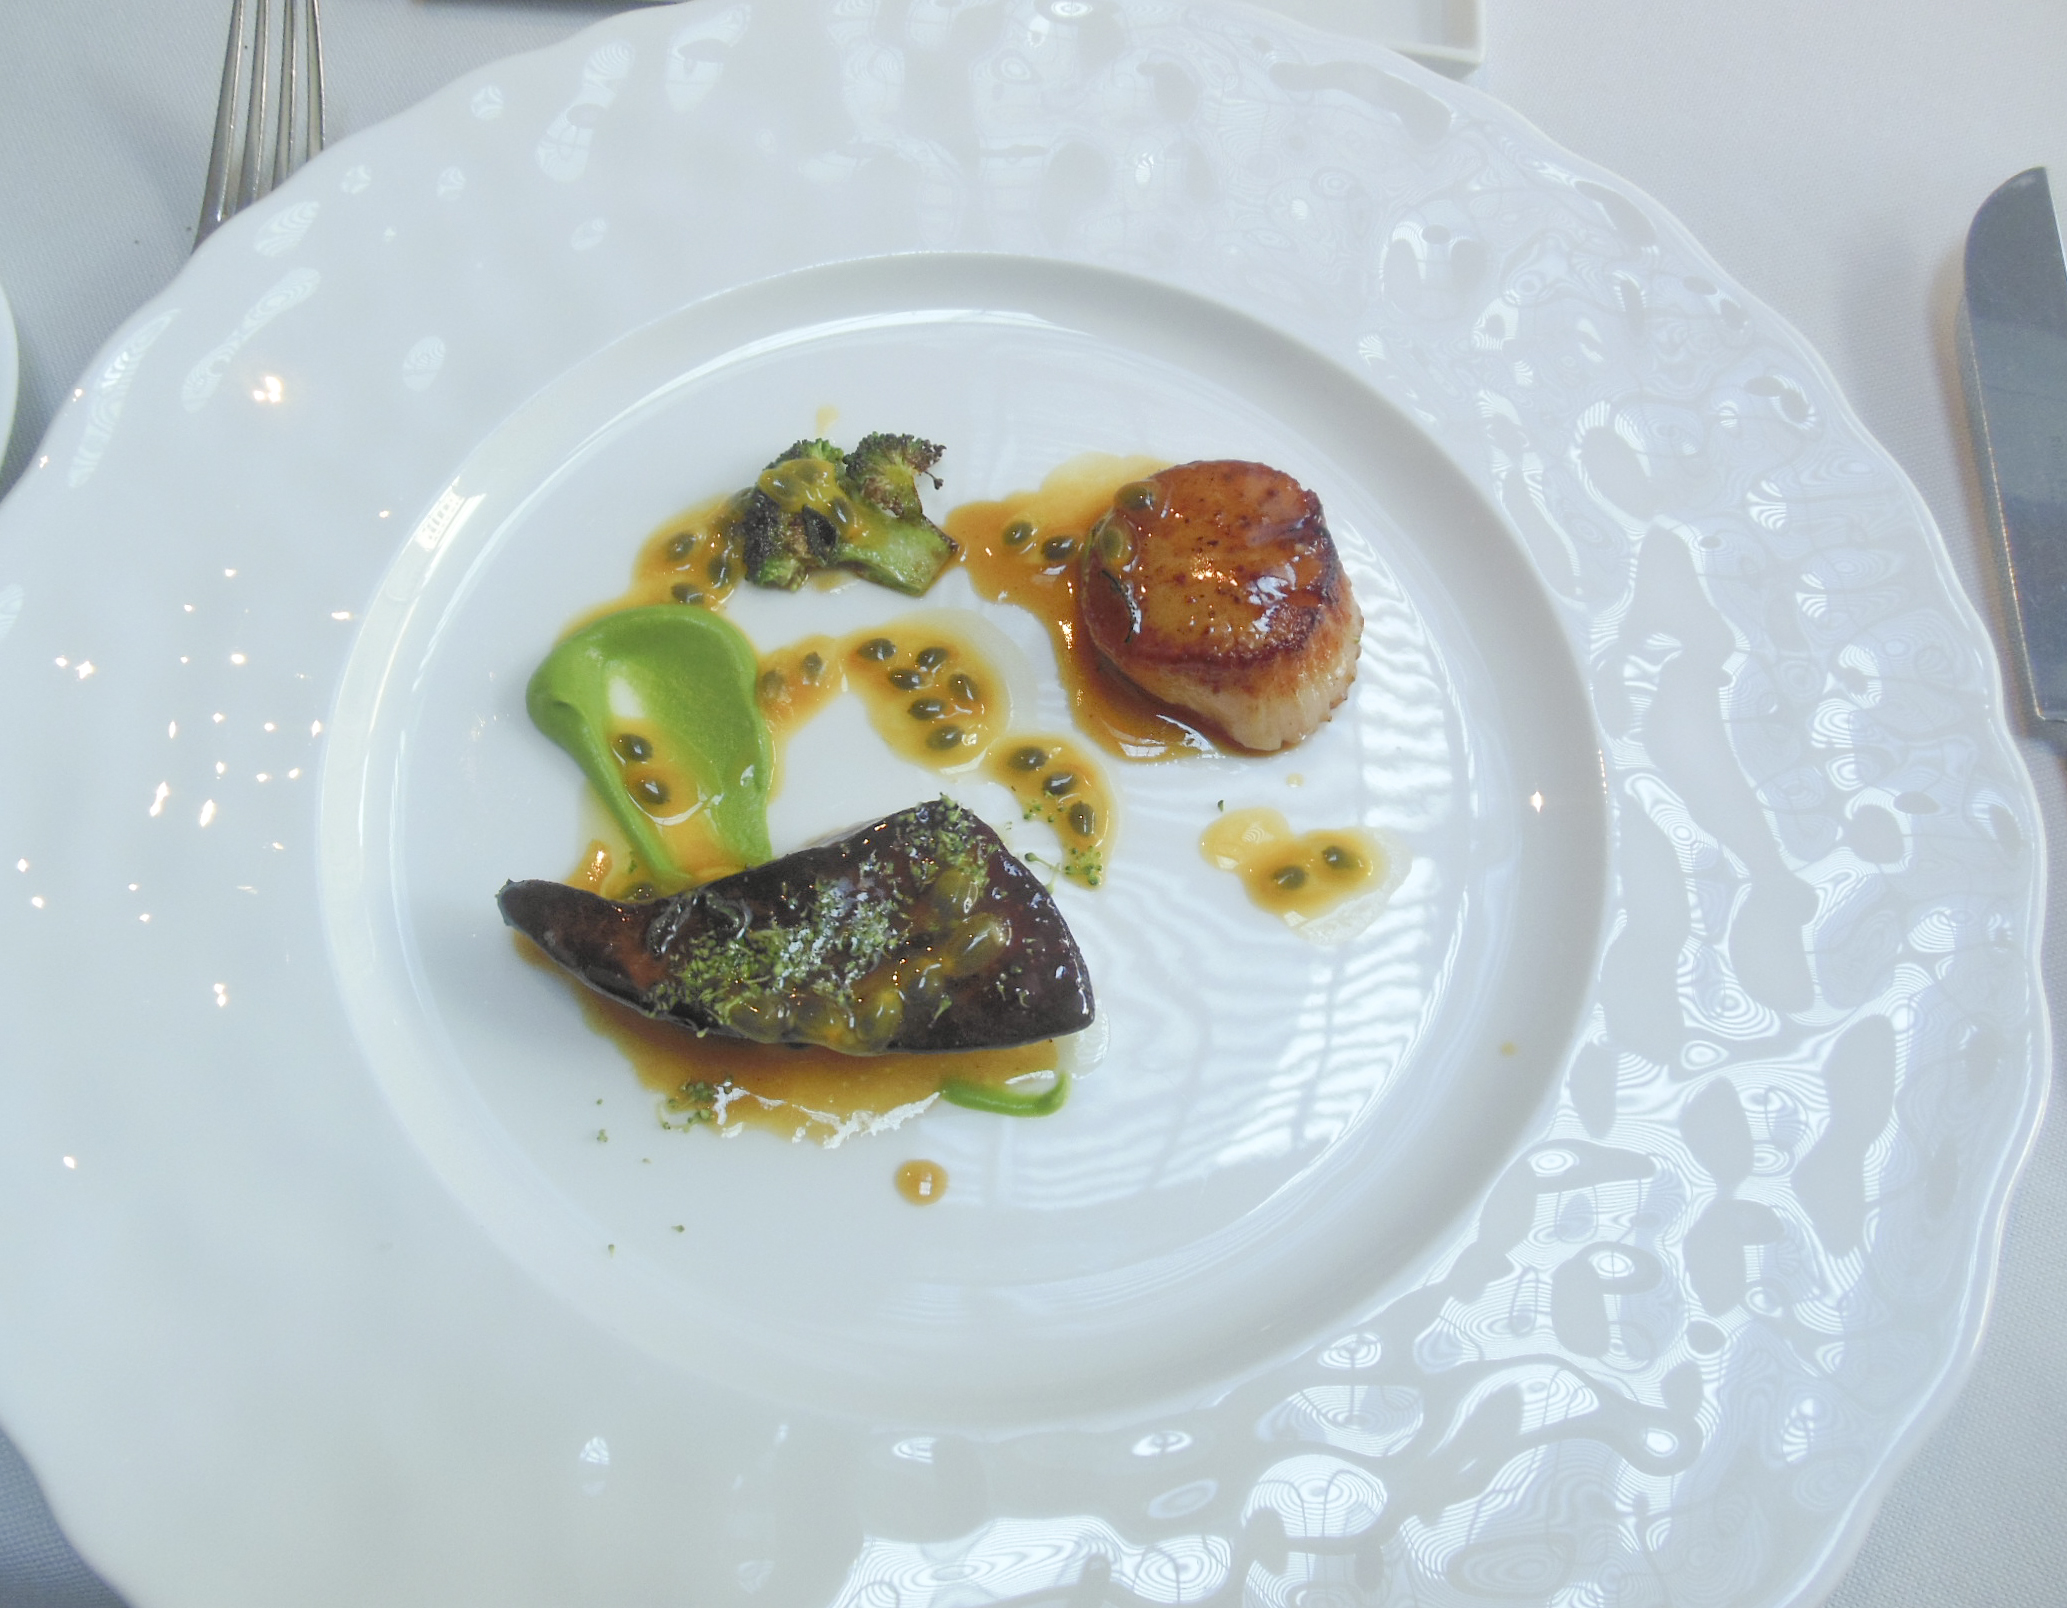 Roasted Foie Gras and Diver Scallop